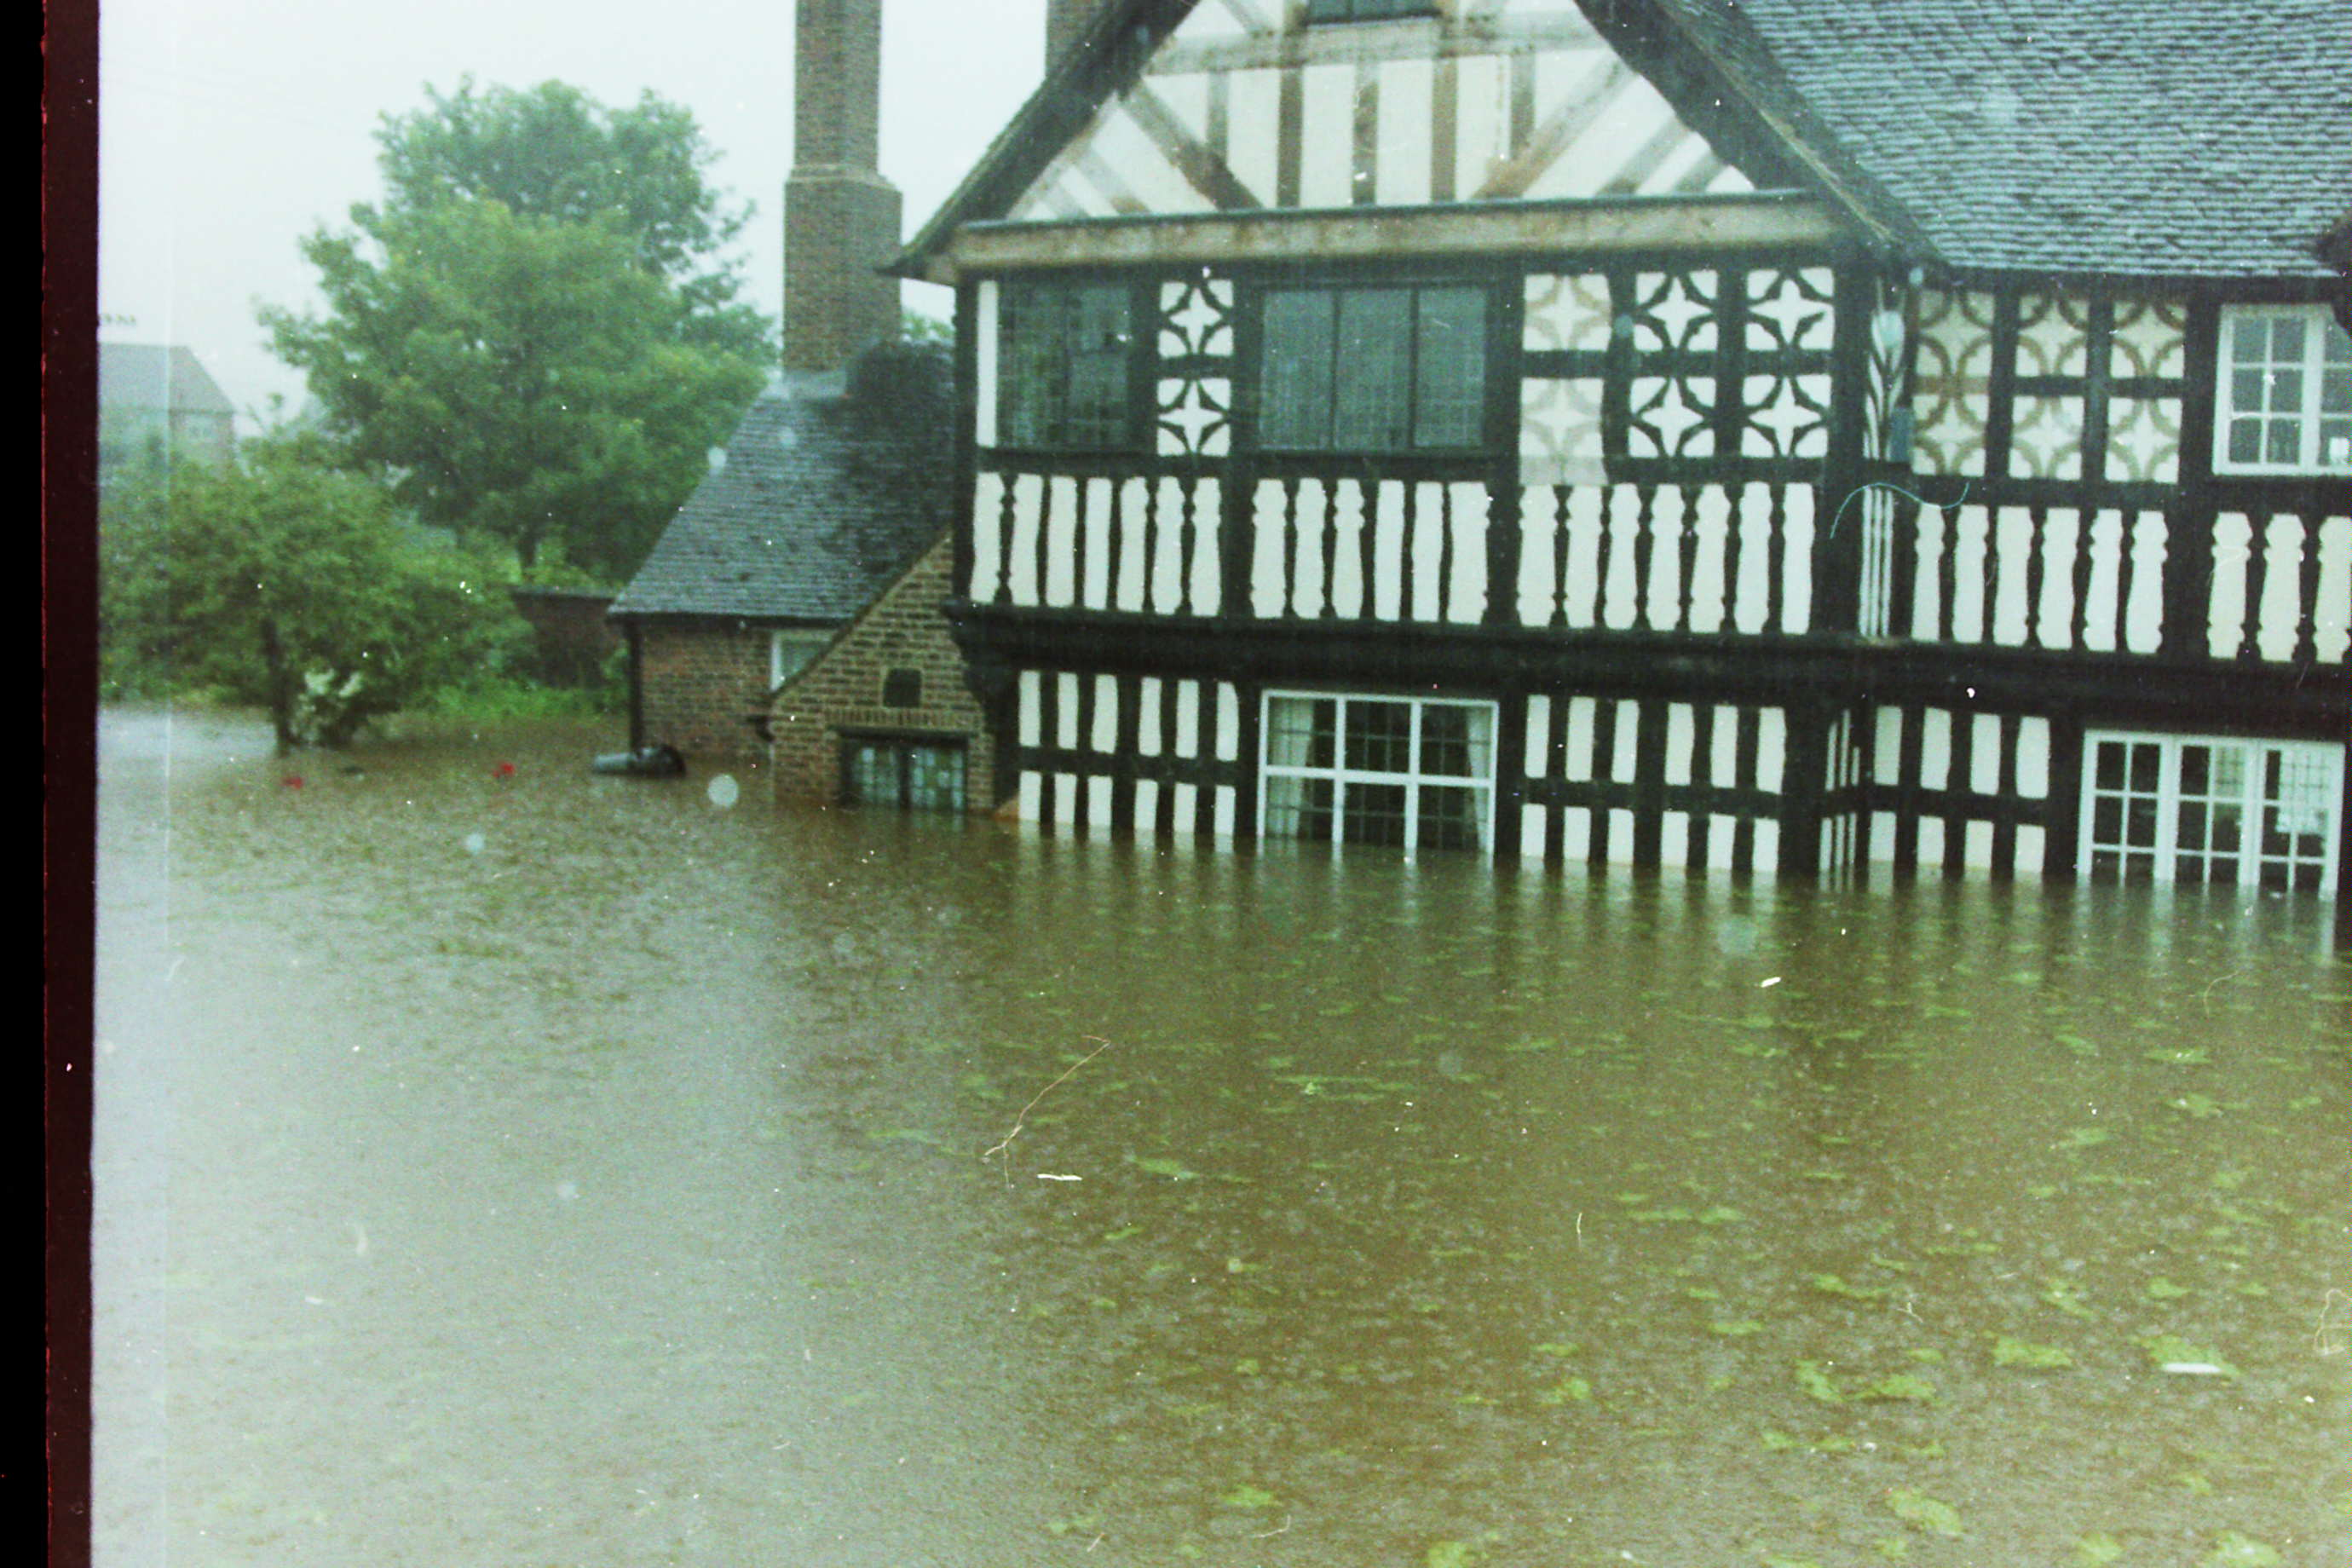 Flooding at Ford Green Hall